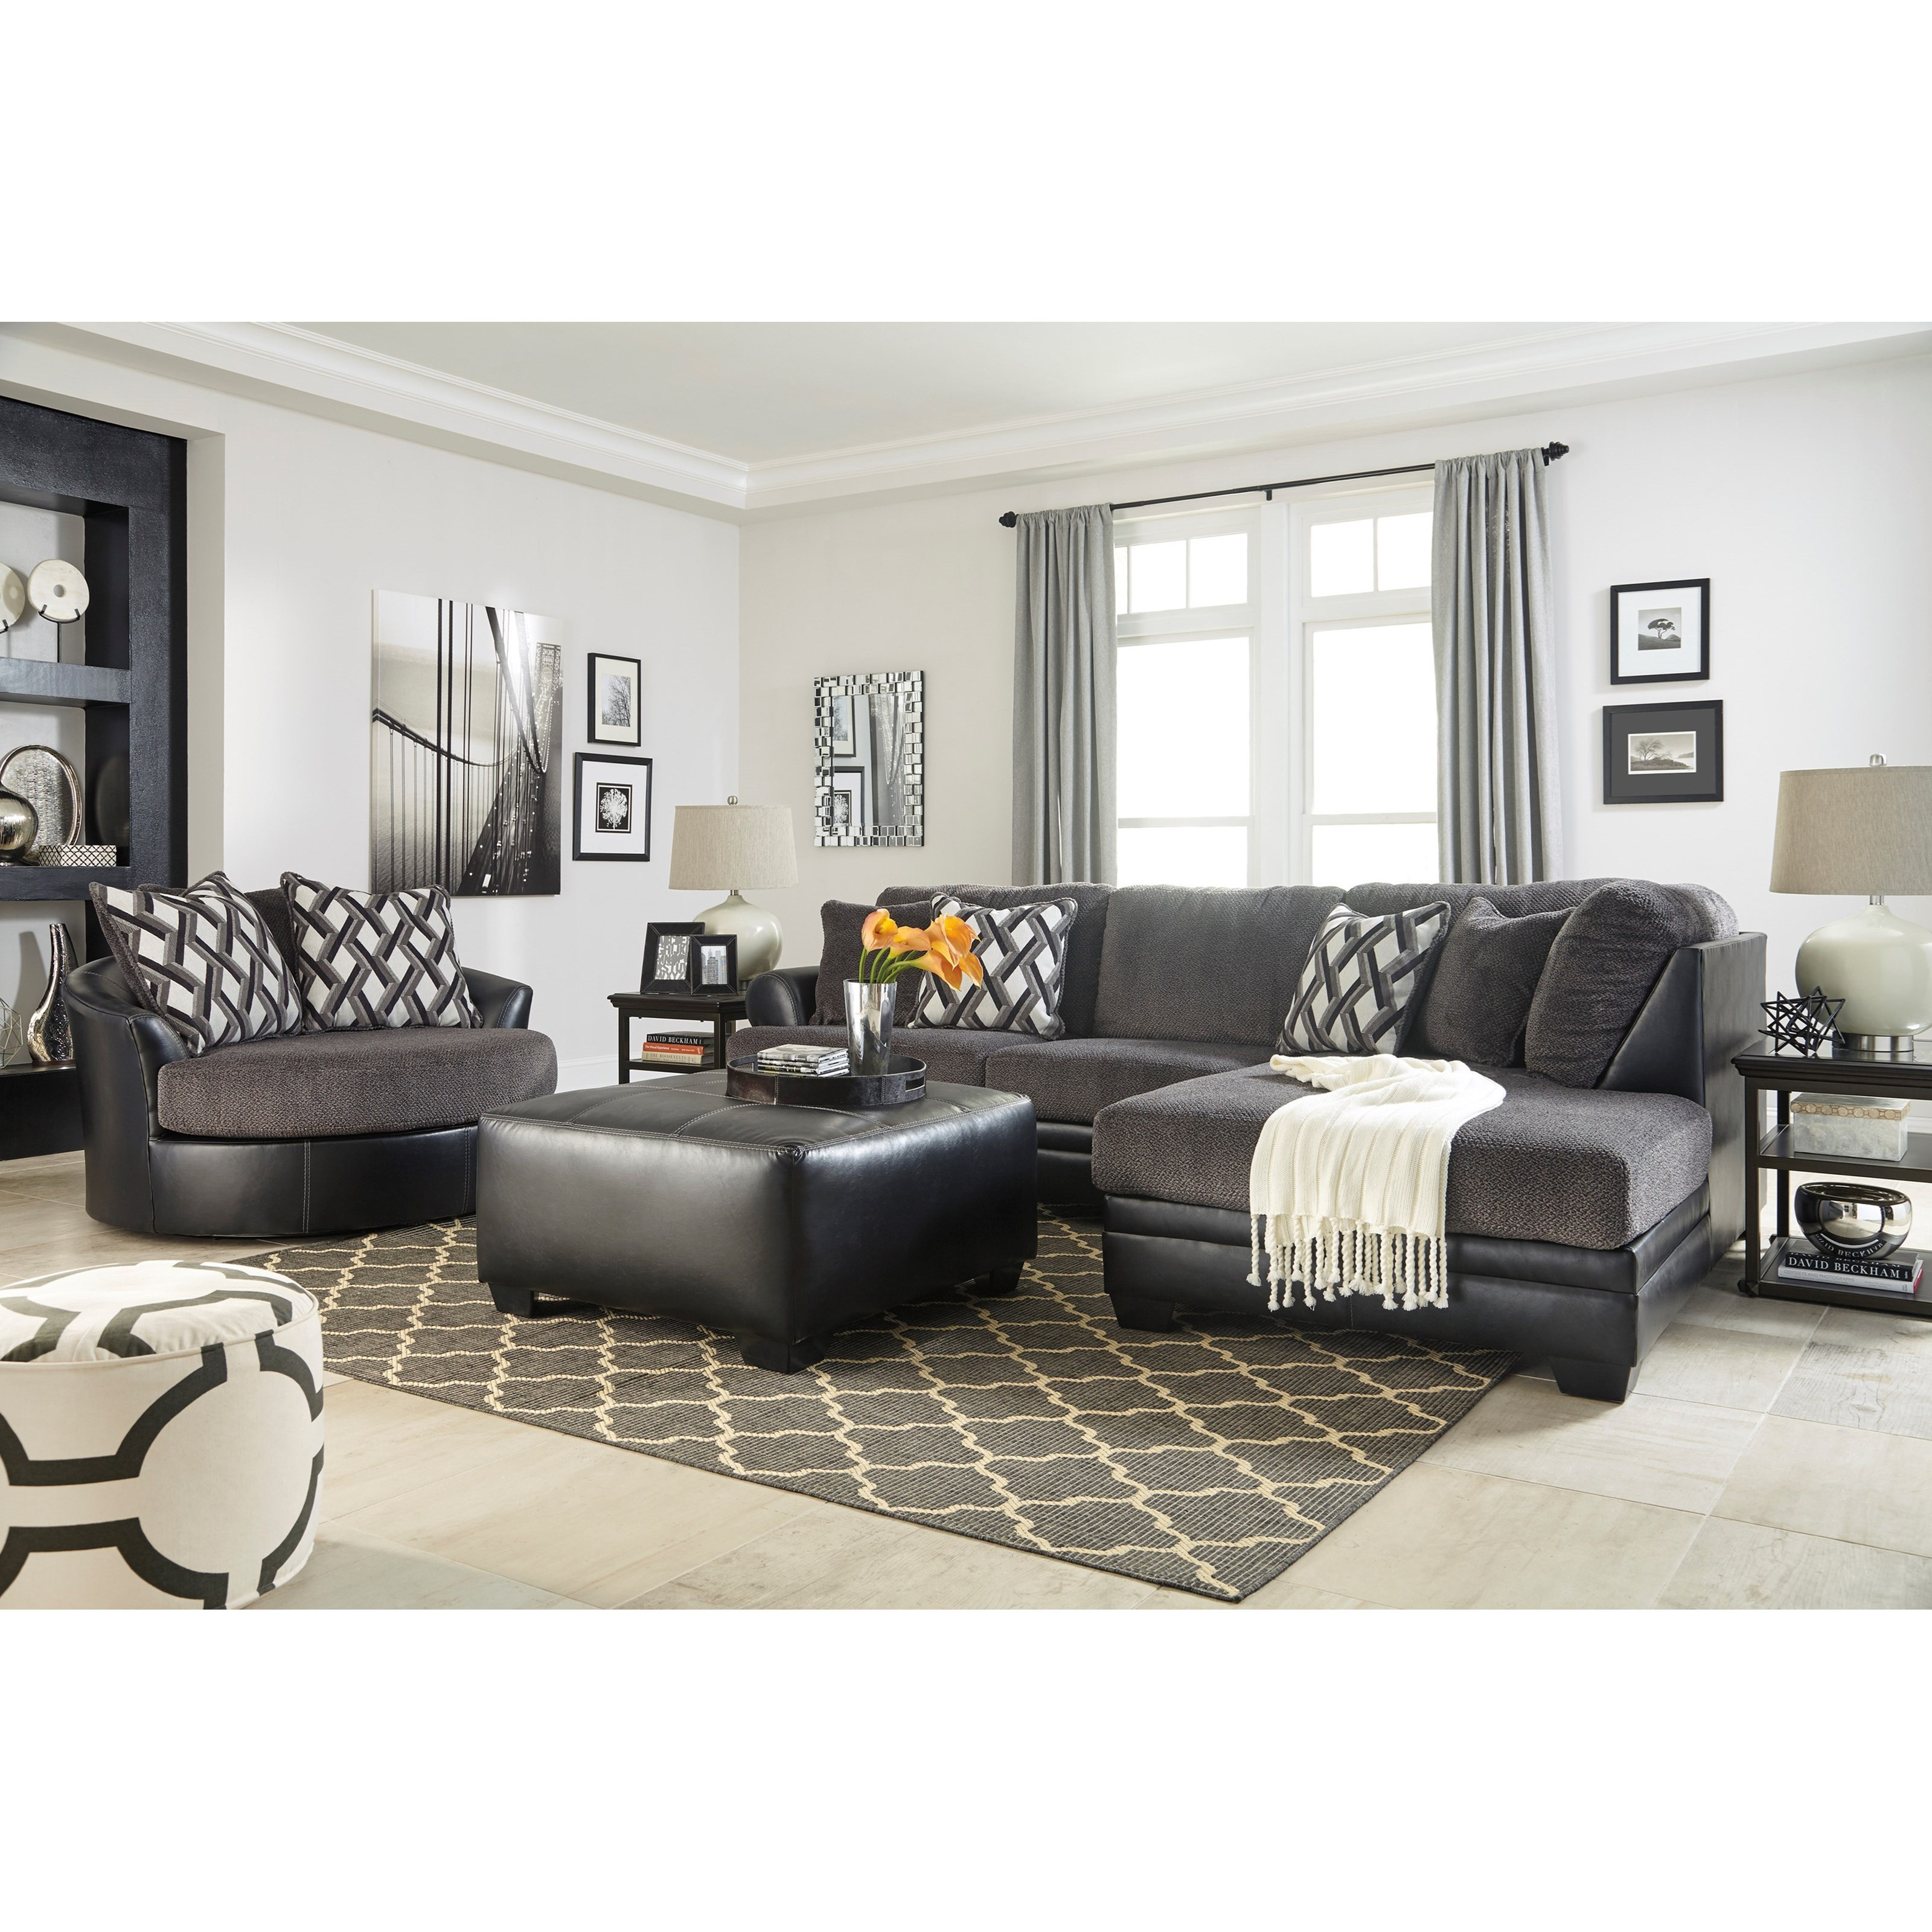 Kumasi Living Room Group by Benchcraft at Northeast Factory Direct